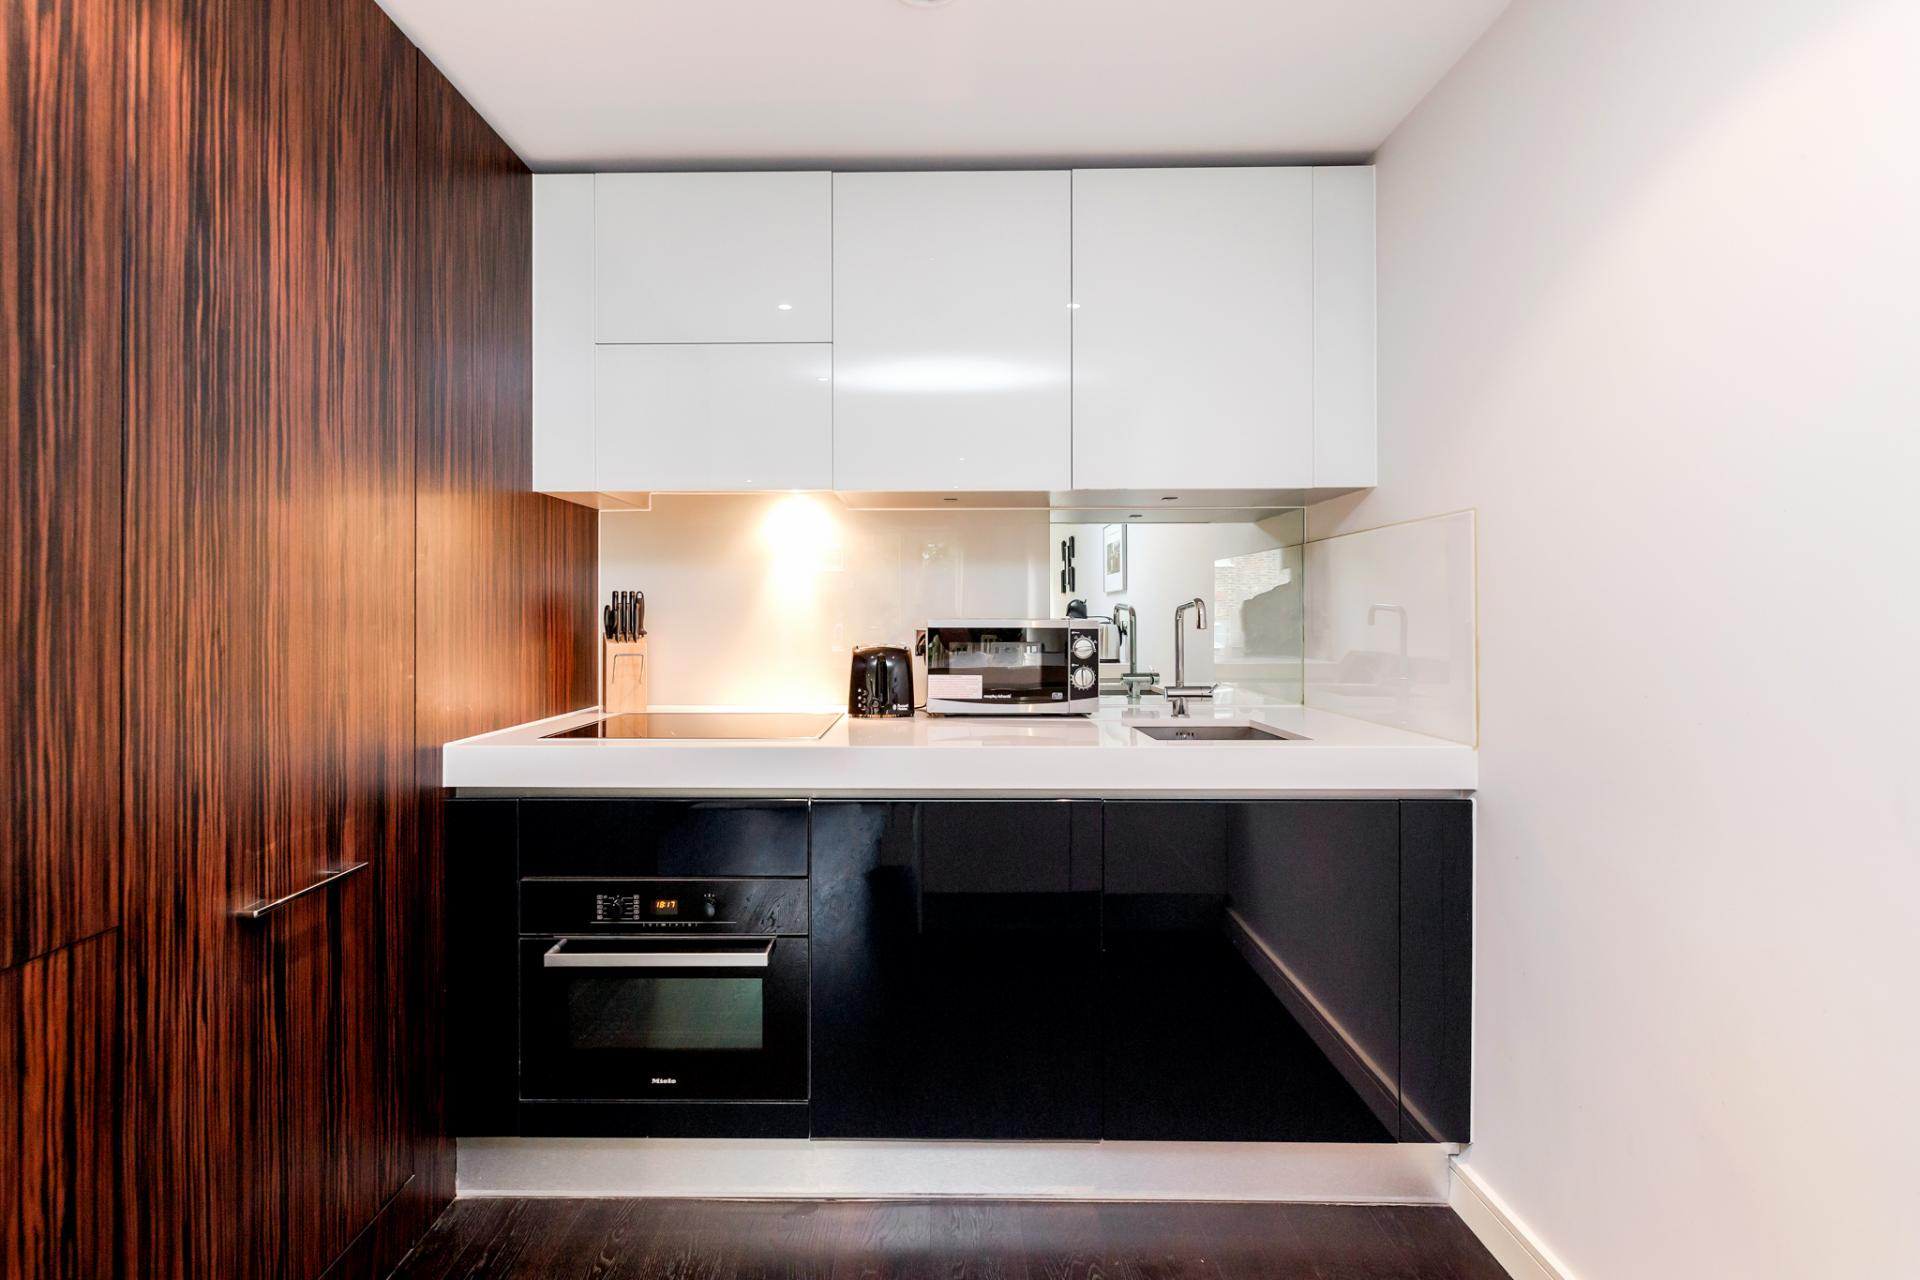 Kitchen at Chelsea Serviced Apartments, Chelsea, London